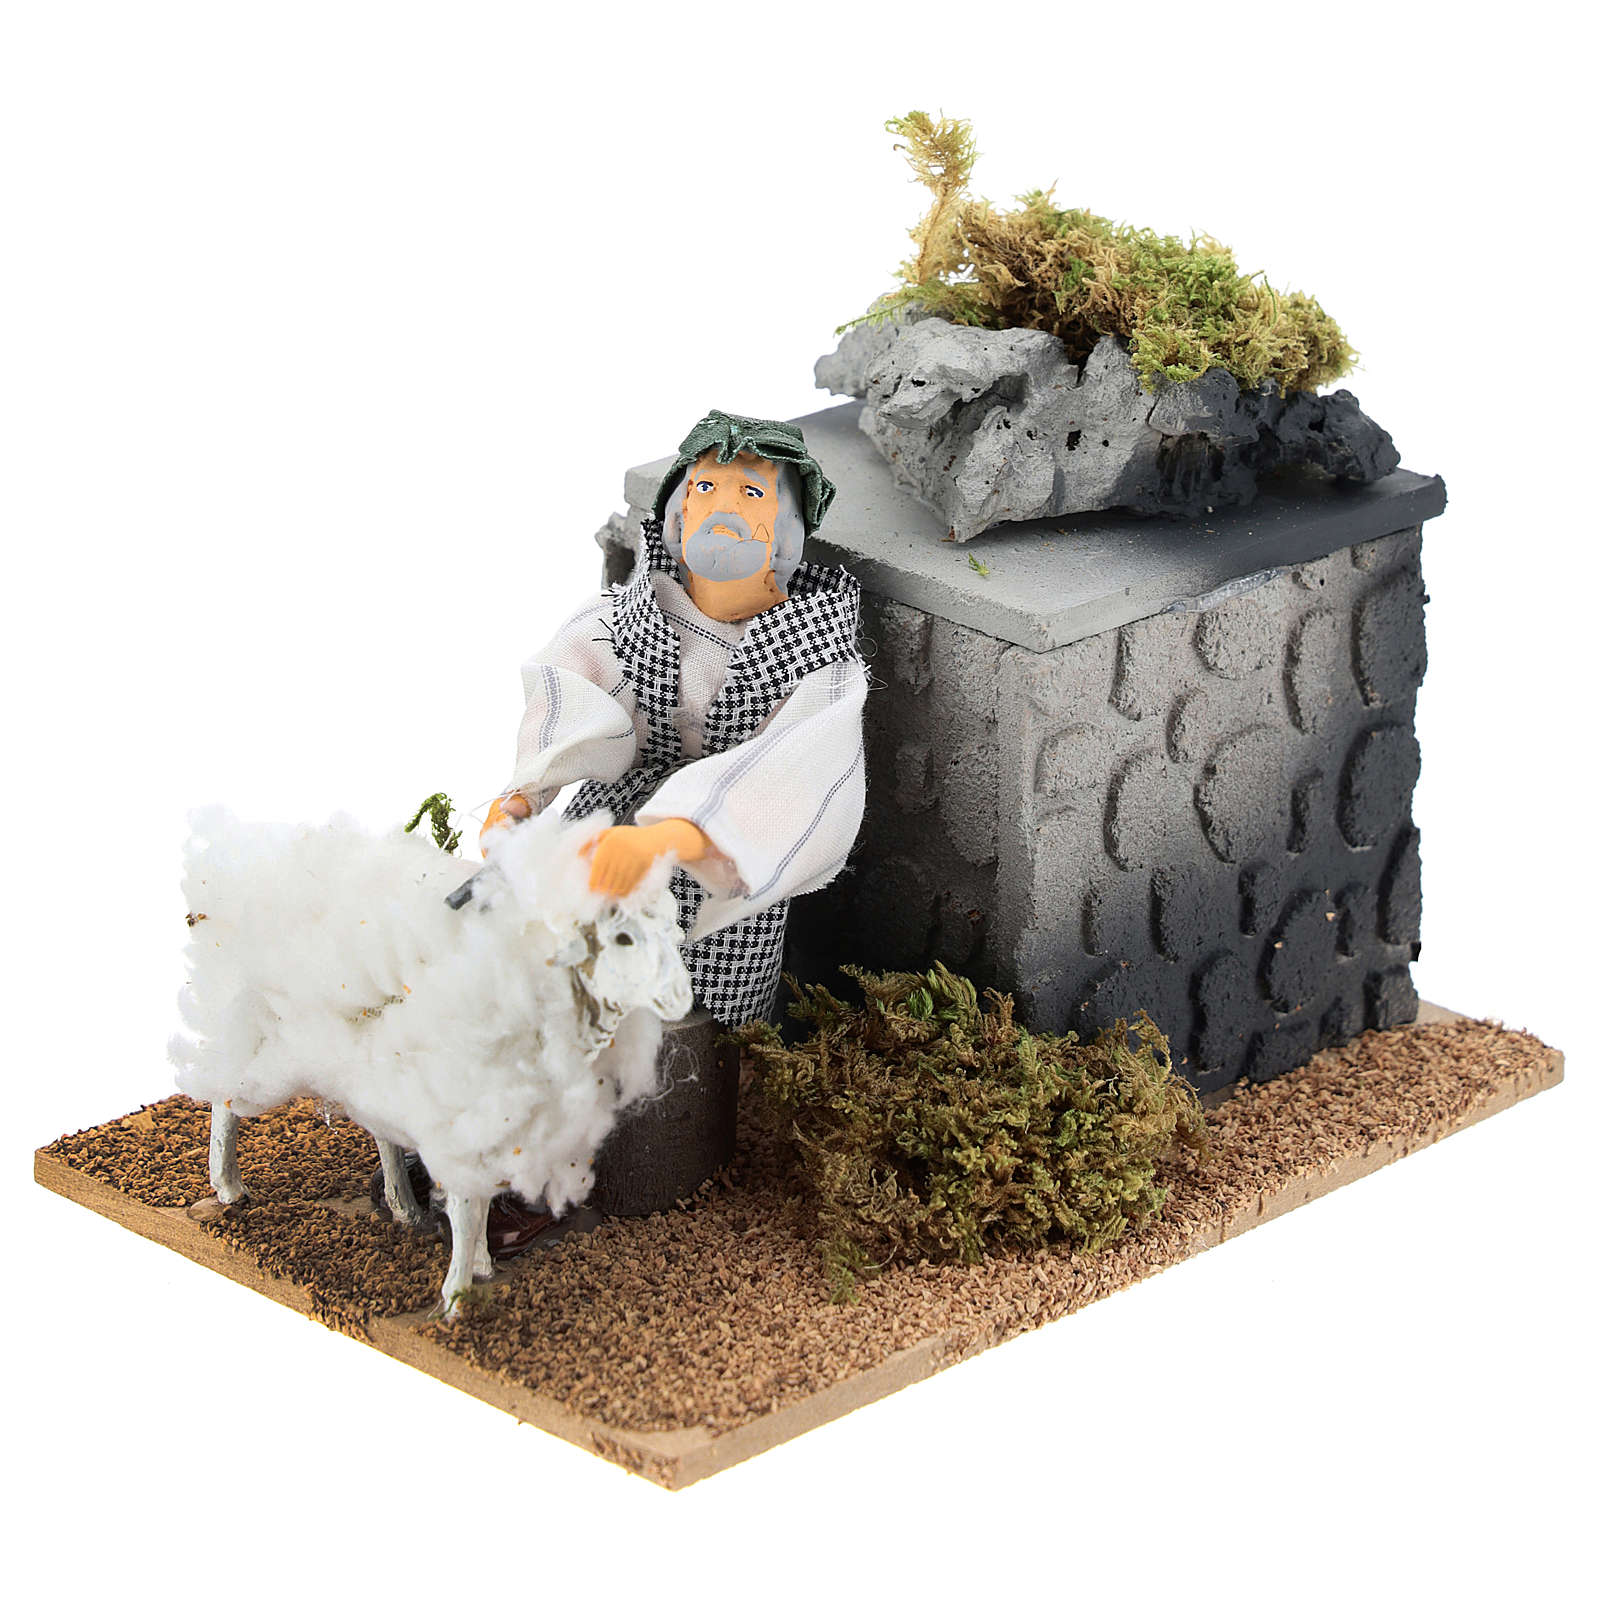 Moving sheep shearer 10x15x10 cm Nativity Scene 12 cm 3